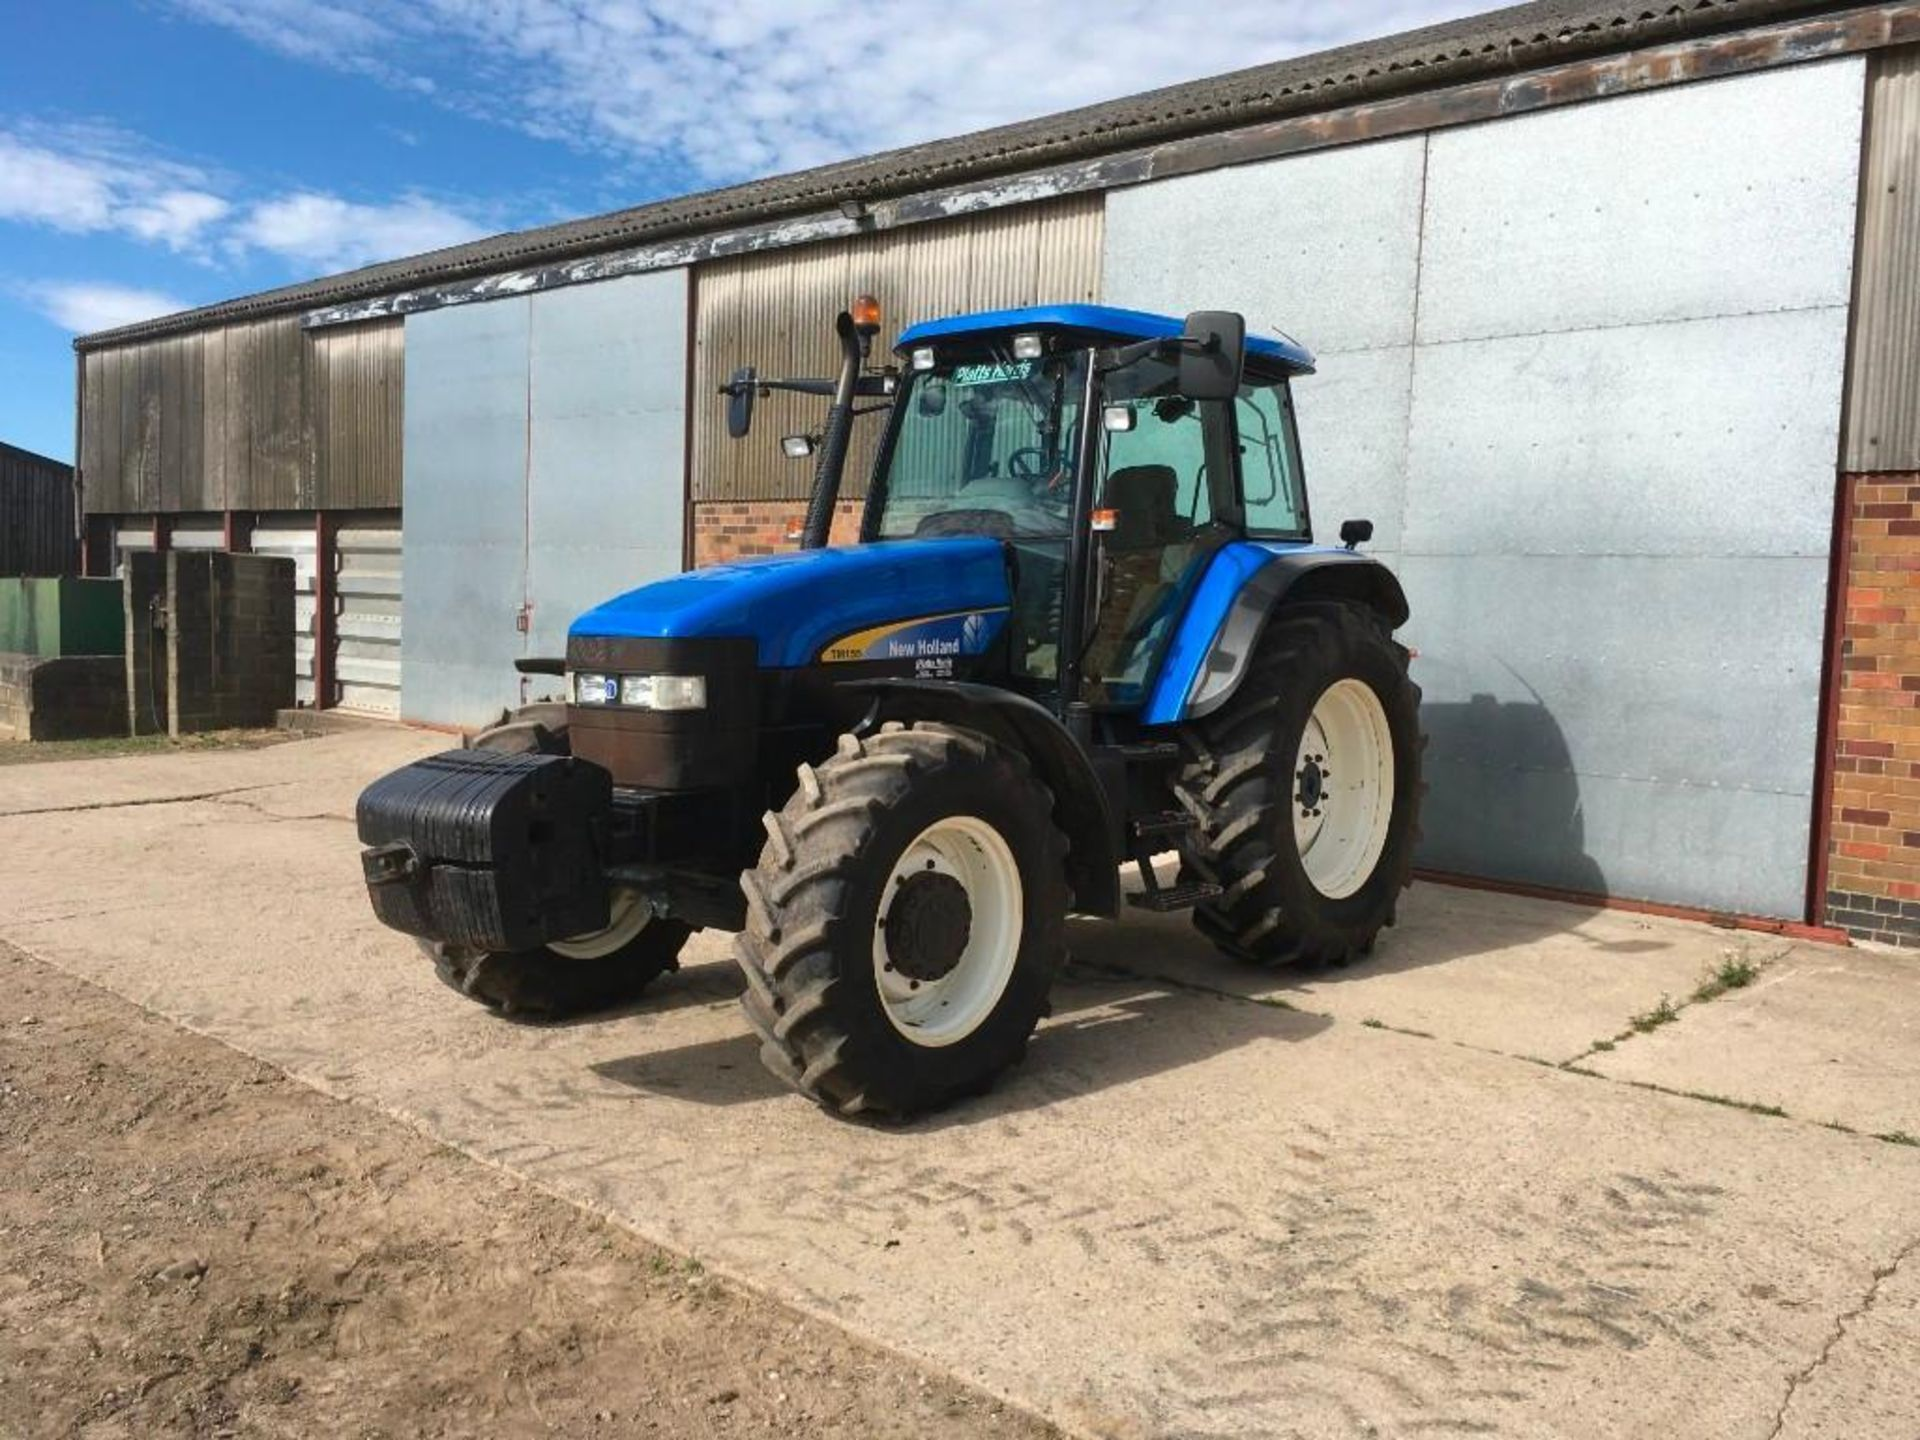 2007 New Holland TM155 tractor with range command gear box, 4 spool valves, push out pick up hitch, - Image 2 of 12